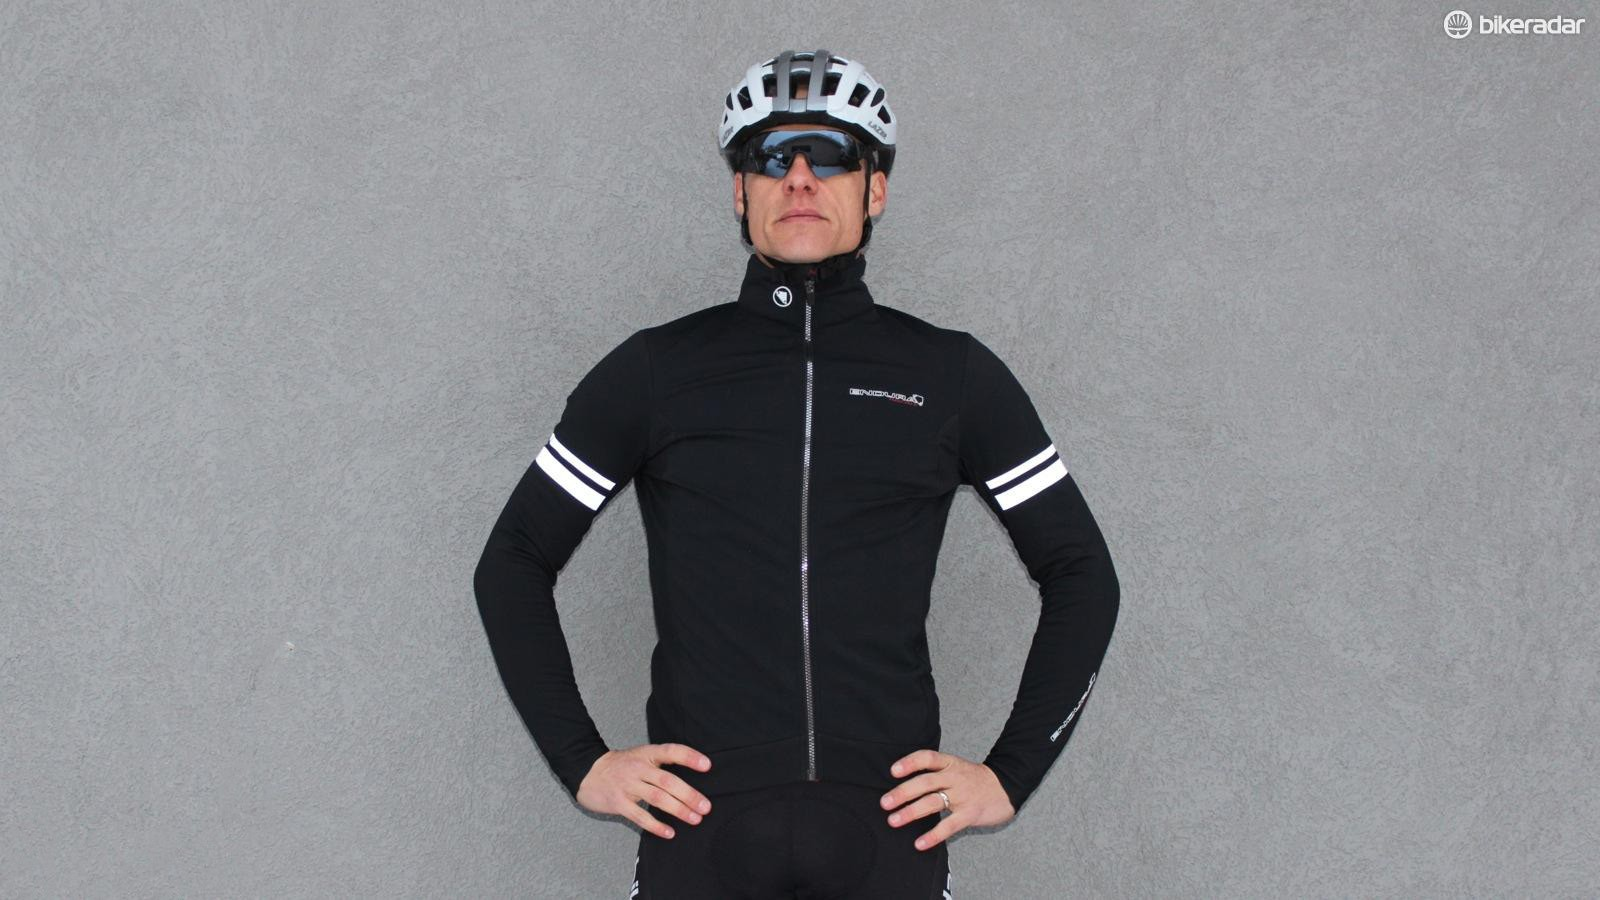 Get your layering right and you can ride in comfort whatever the conditions